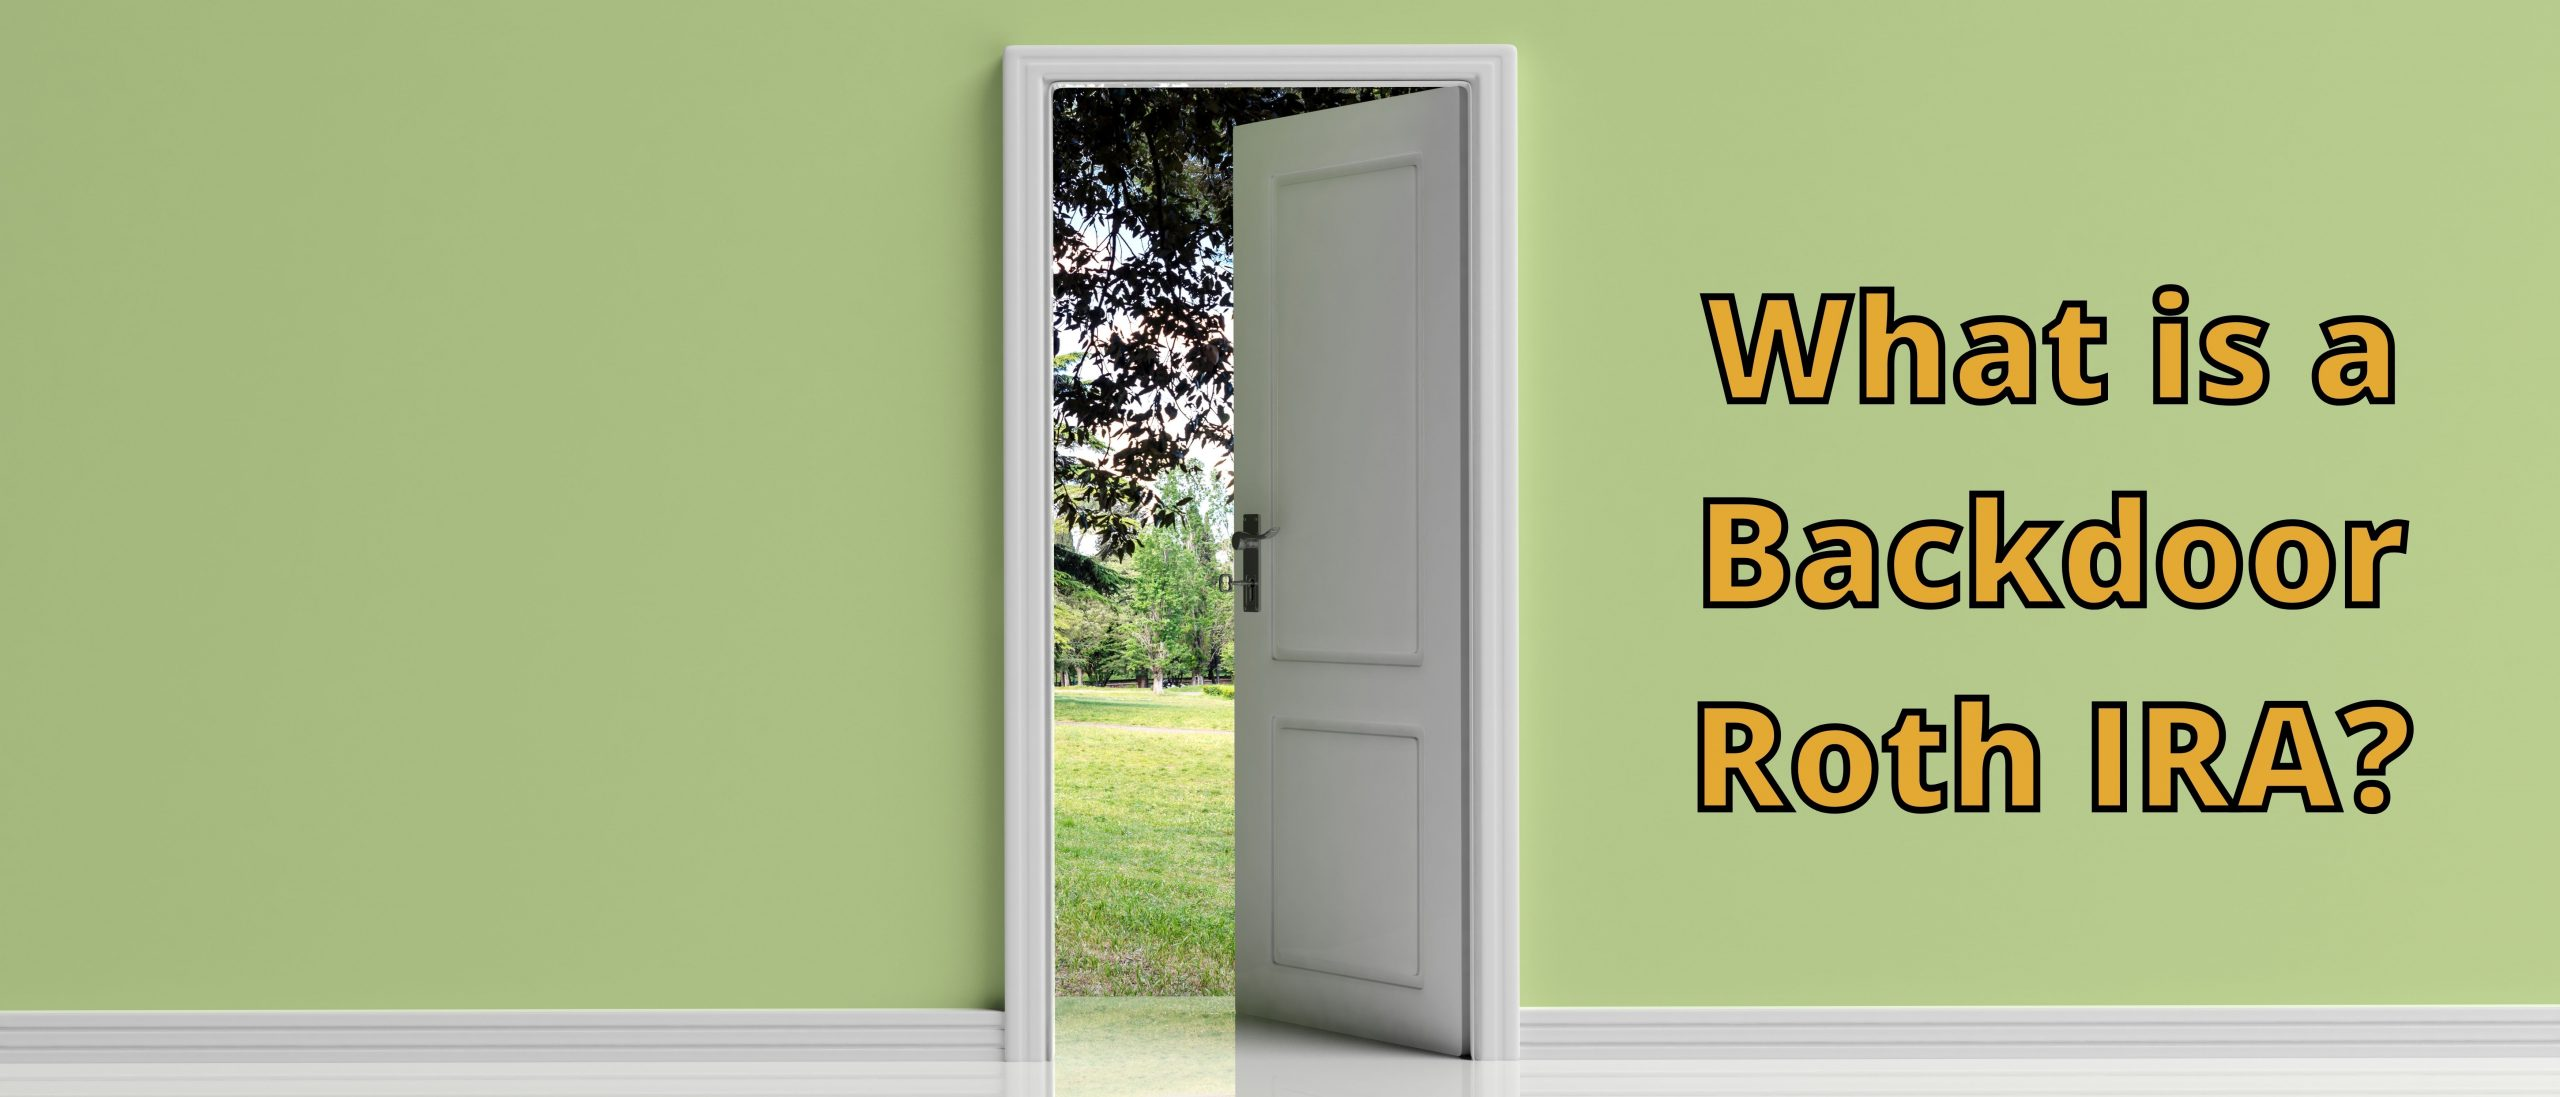 What is a Backdoor Roth IRA Hero Image